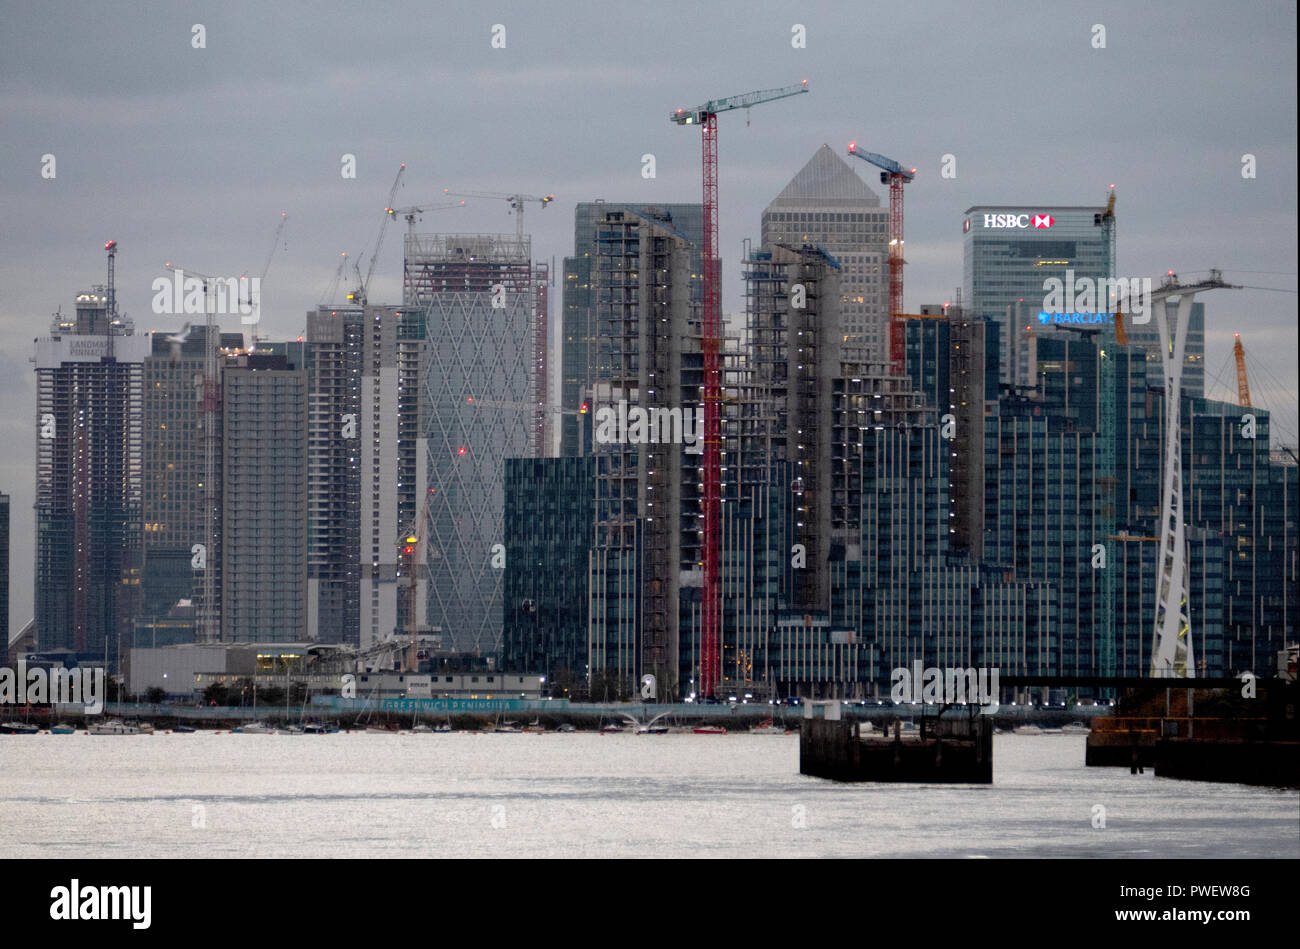 New Thames riverside skyscrapers rise up near Canary Wharf Docklands, London, England. - Stock Image